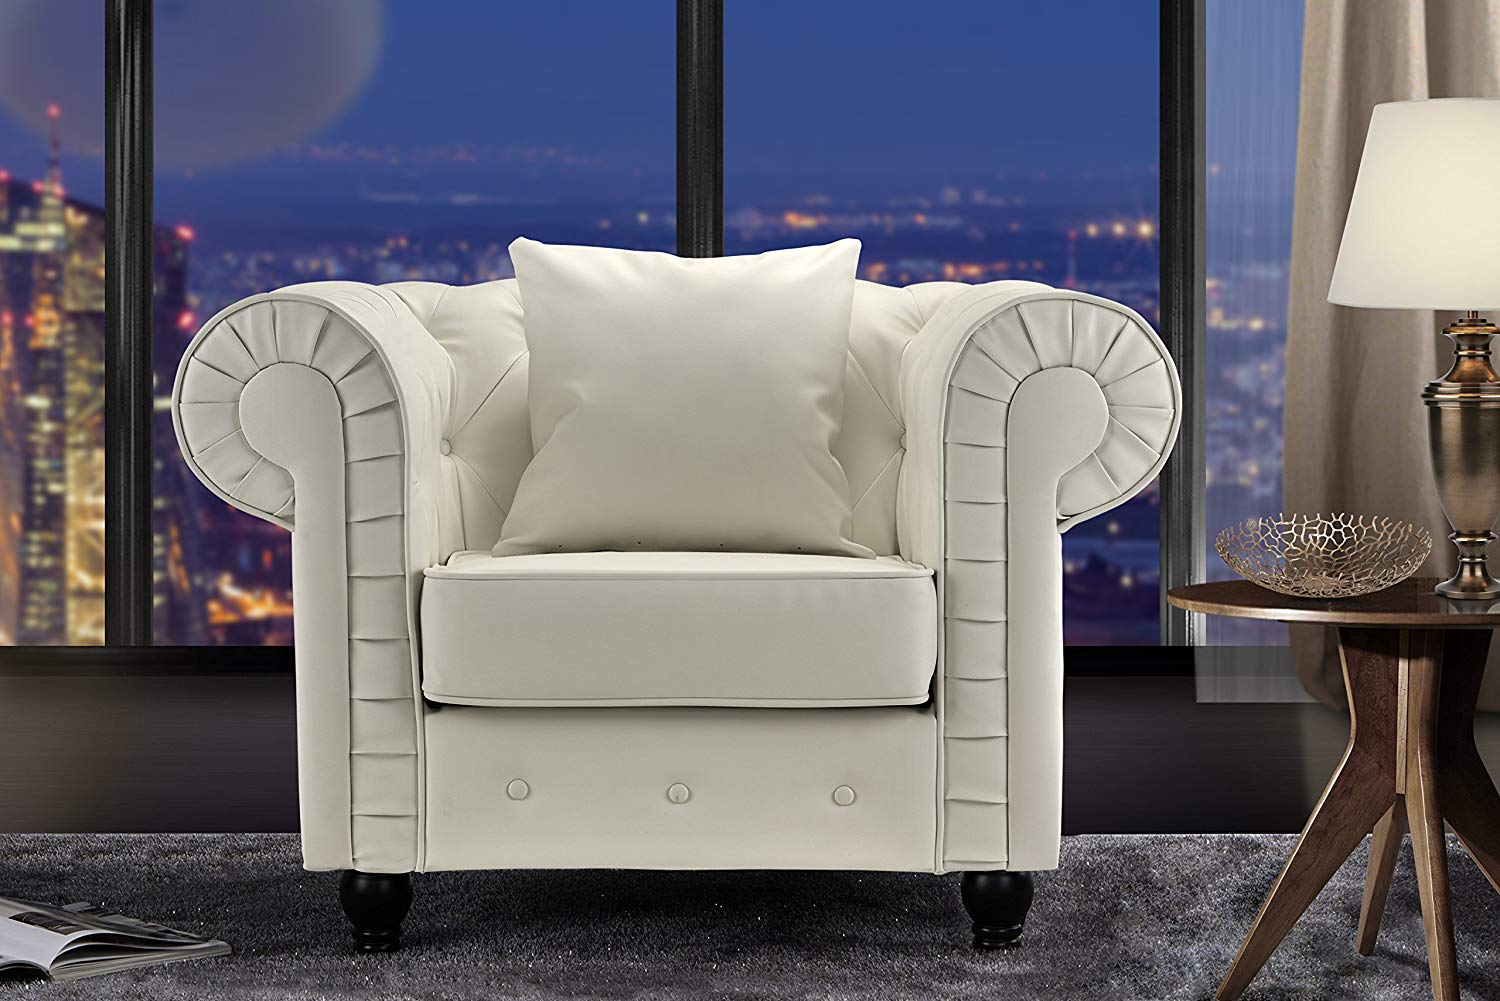 roundhill furniture wonda bonded leather accent chair with wood arms white wedding covers hire liverpool cheap find get quotations sofamania classic chesterfield scroll arm tufted